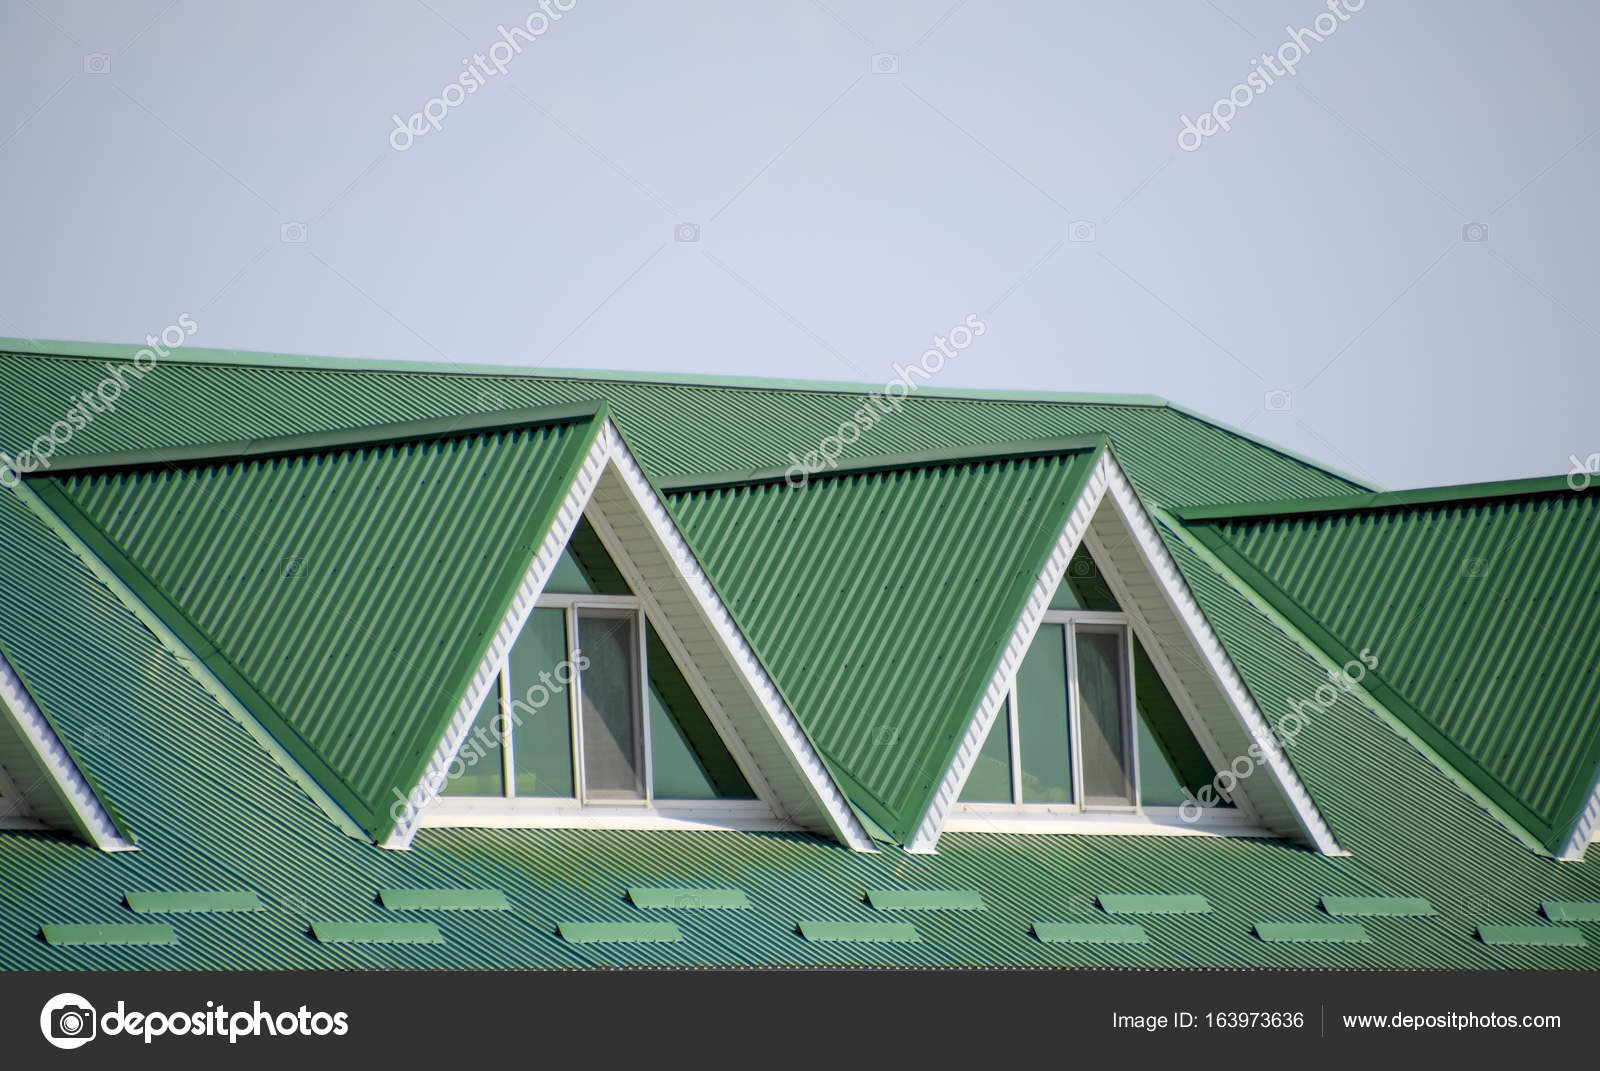 The house with plastic windows and a green roof of corrugated roofing of metal profile wavy shape on the house with plastic windows green roof of corrugated metal profile and plastic sciox Image collections